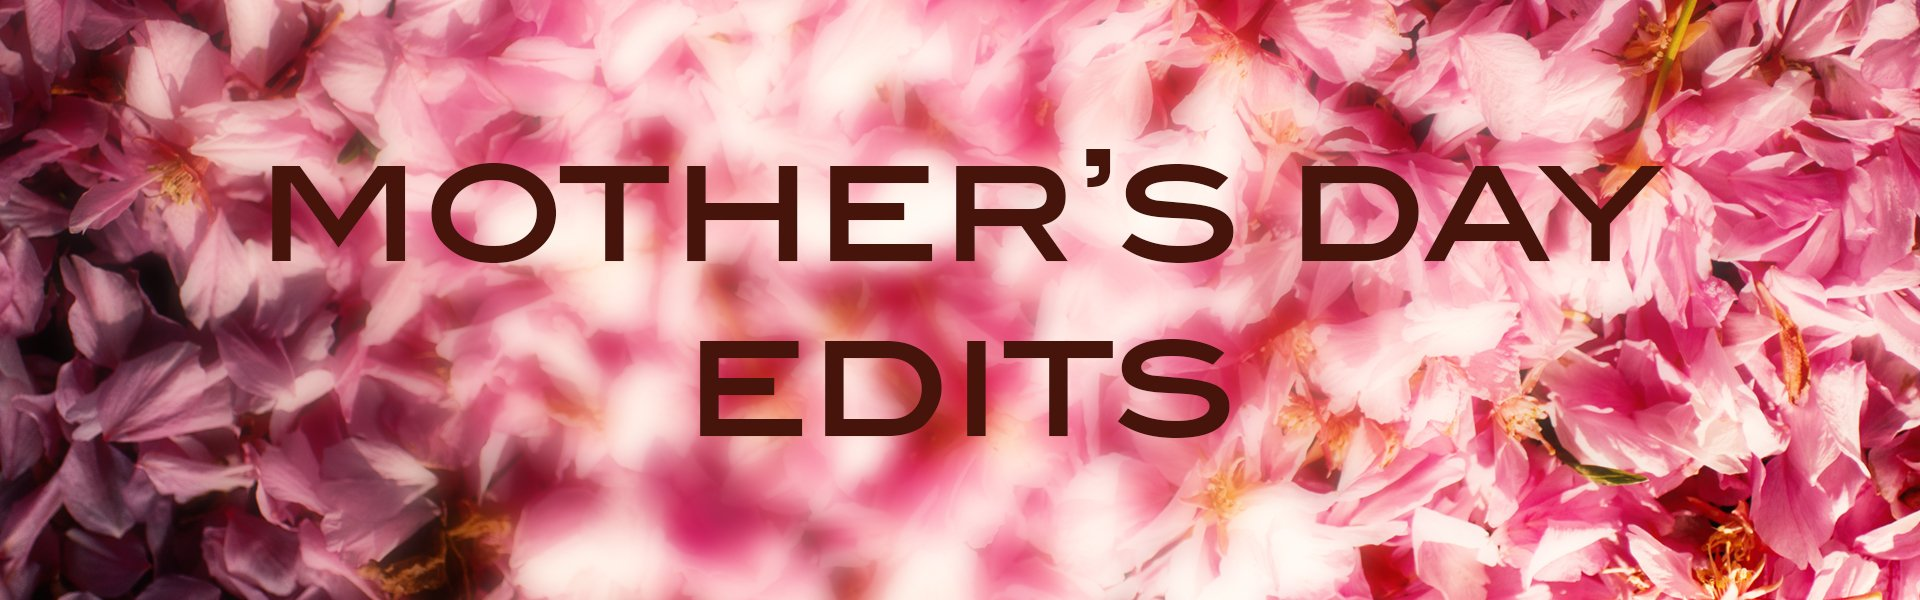 Mother's day edit